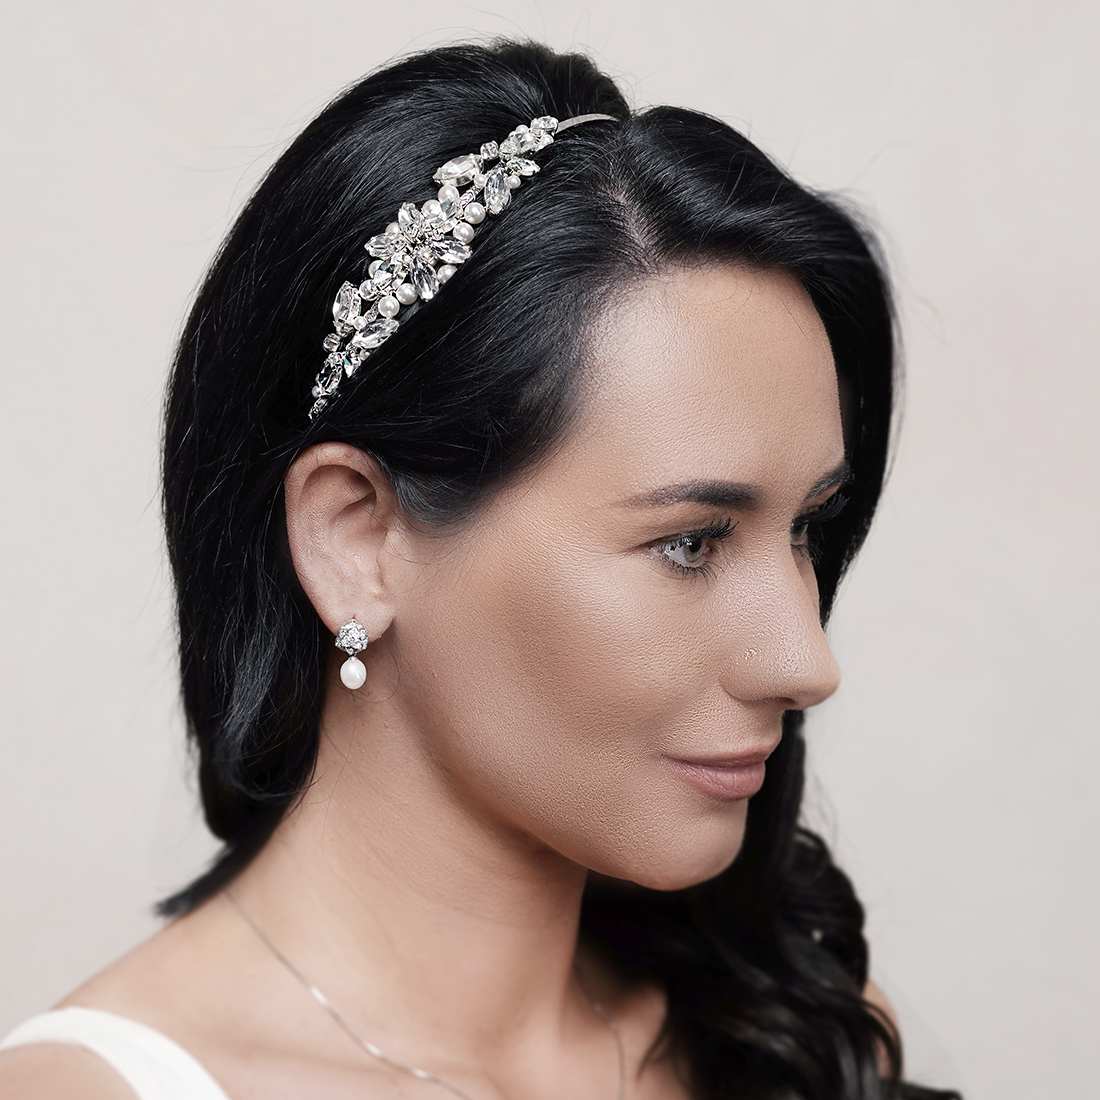 Wedding headband with hair all down